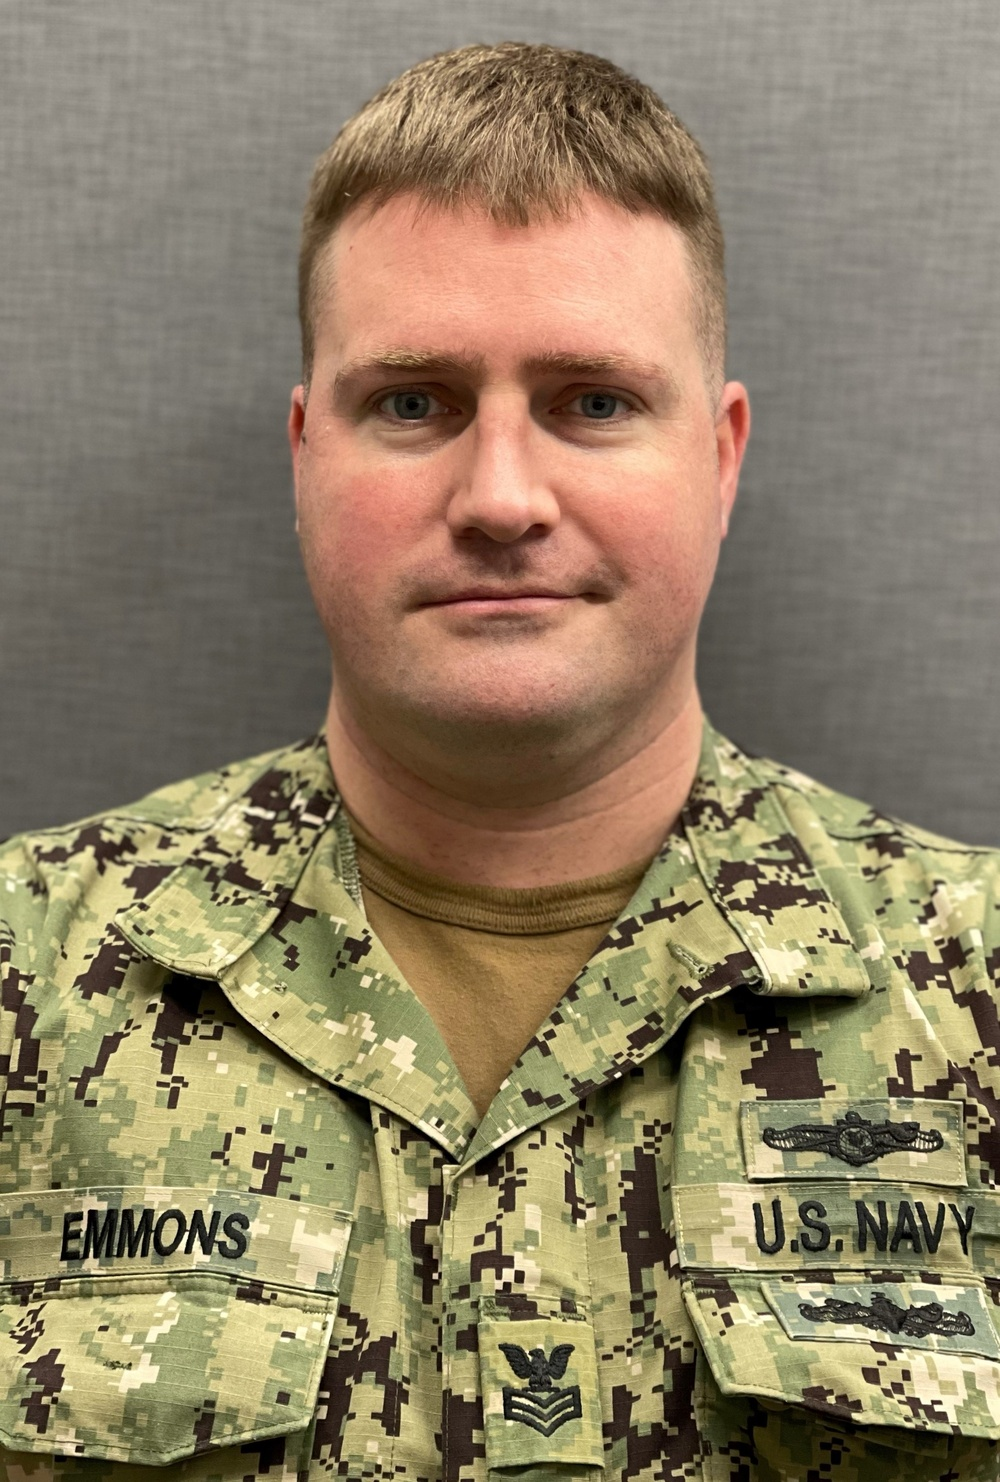 IWTC Virginia Beach Learning Site Mayport Sailor Trains IW Warriors to Fight and Win